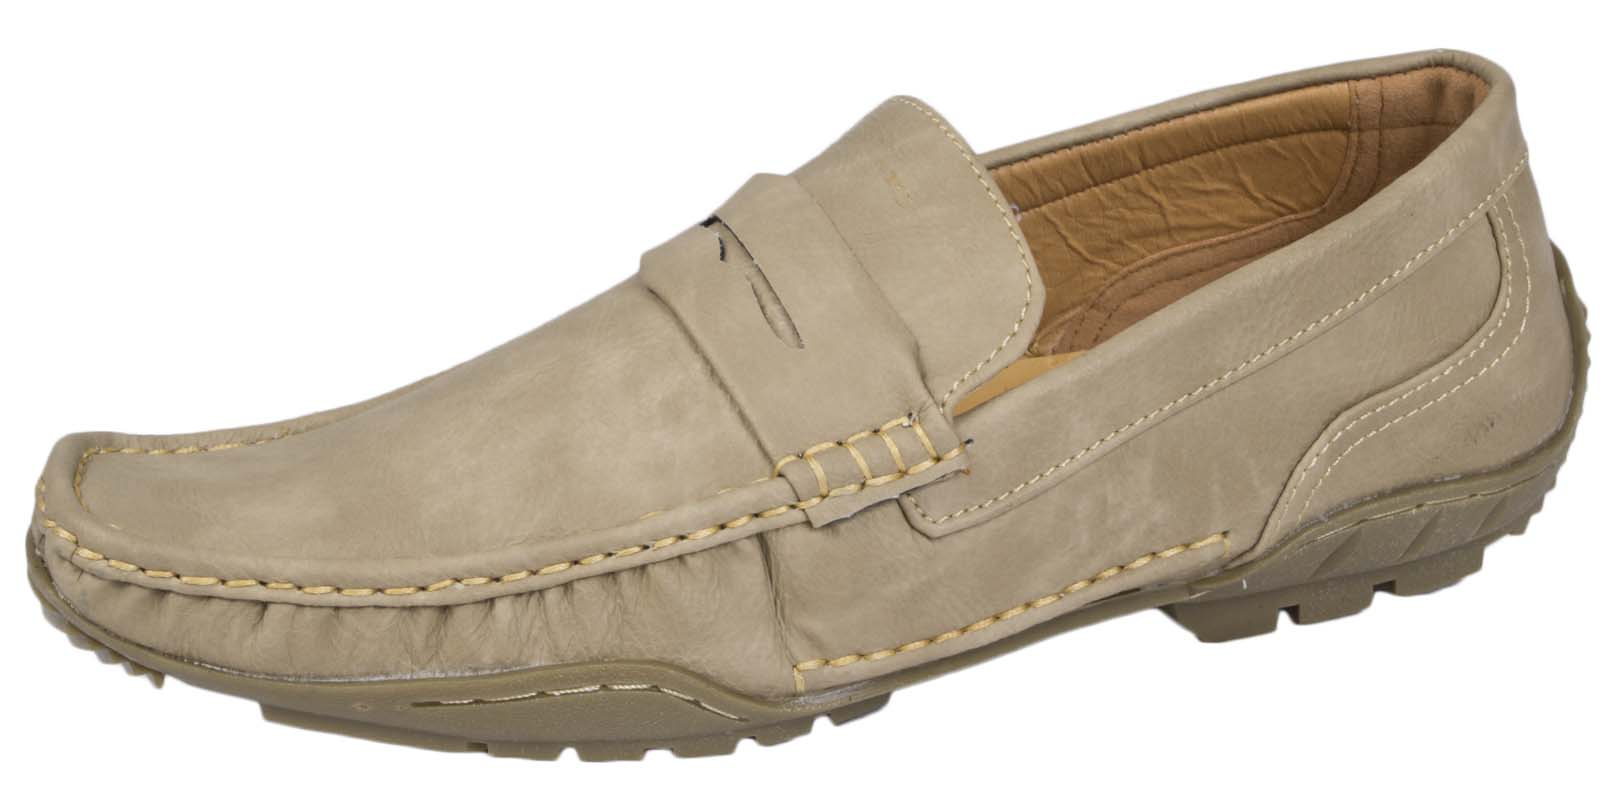 MENS-MOCCASIN-MULES-LOAFERS-FLEXIBLE-SOLE-SHOES-BLACK-TAN-BROWN-FAUX-SUEDE-6-11